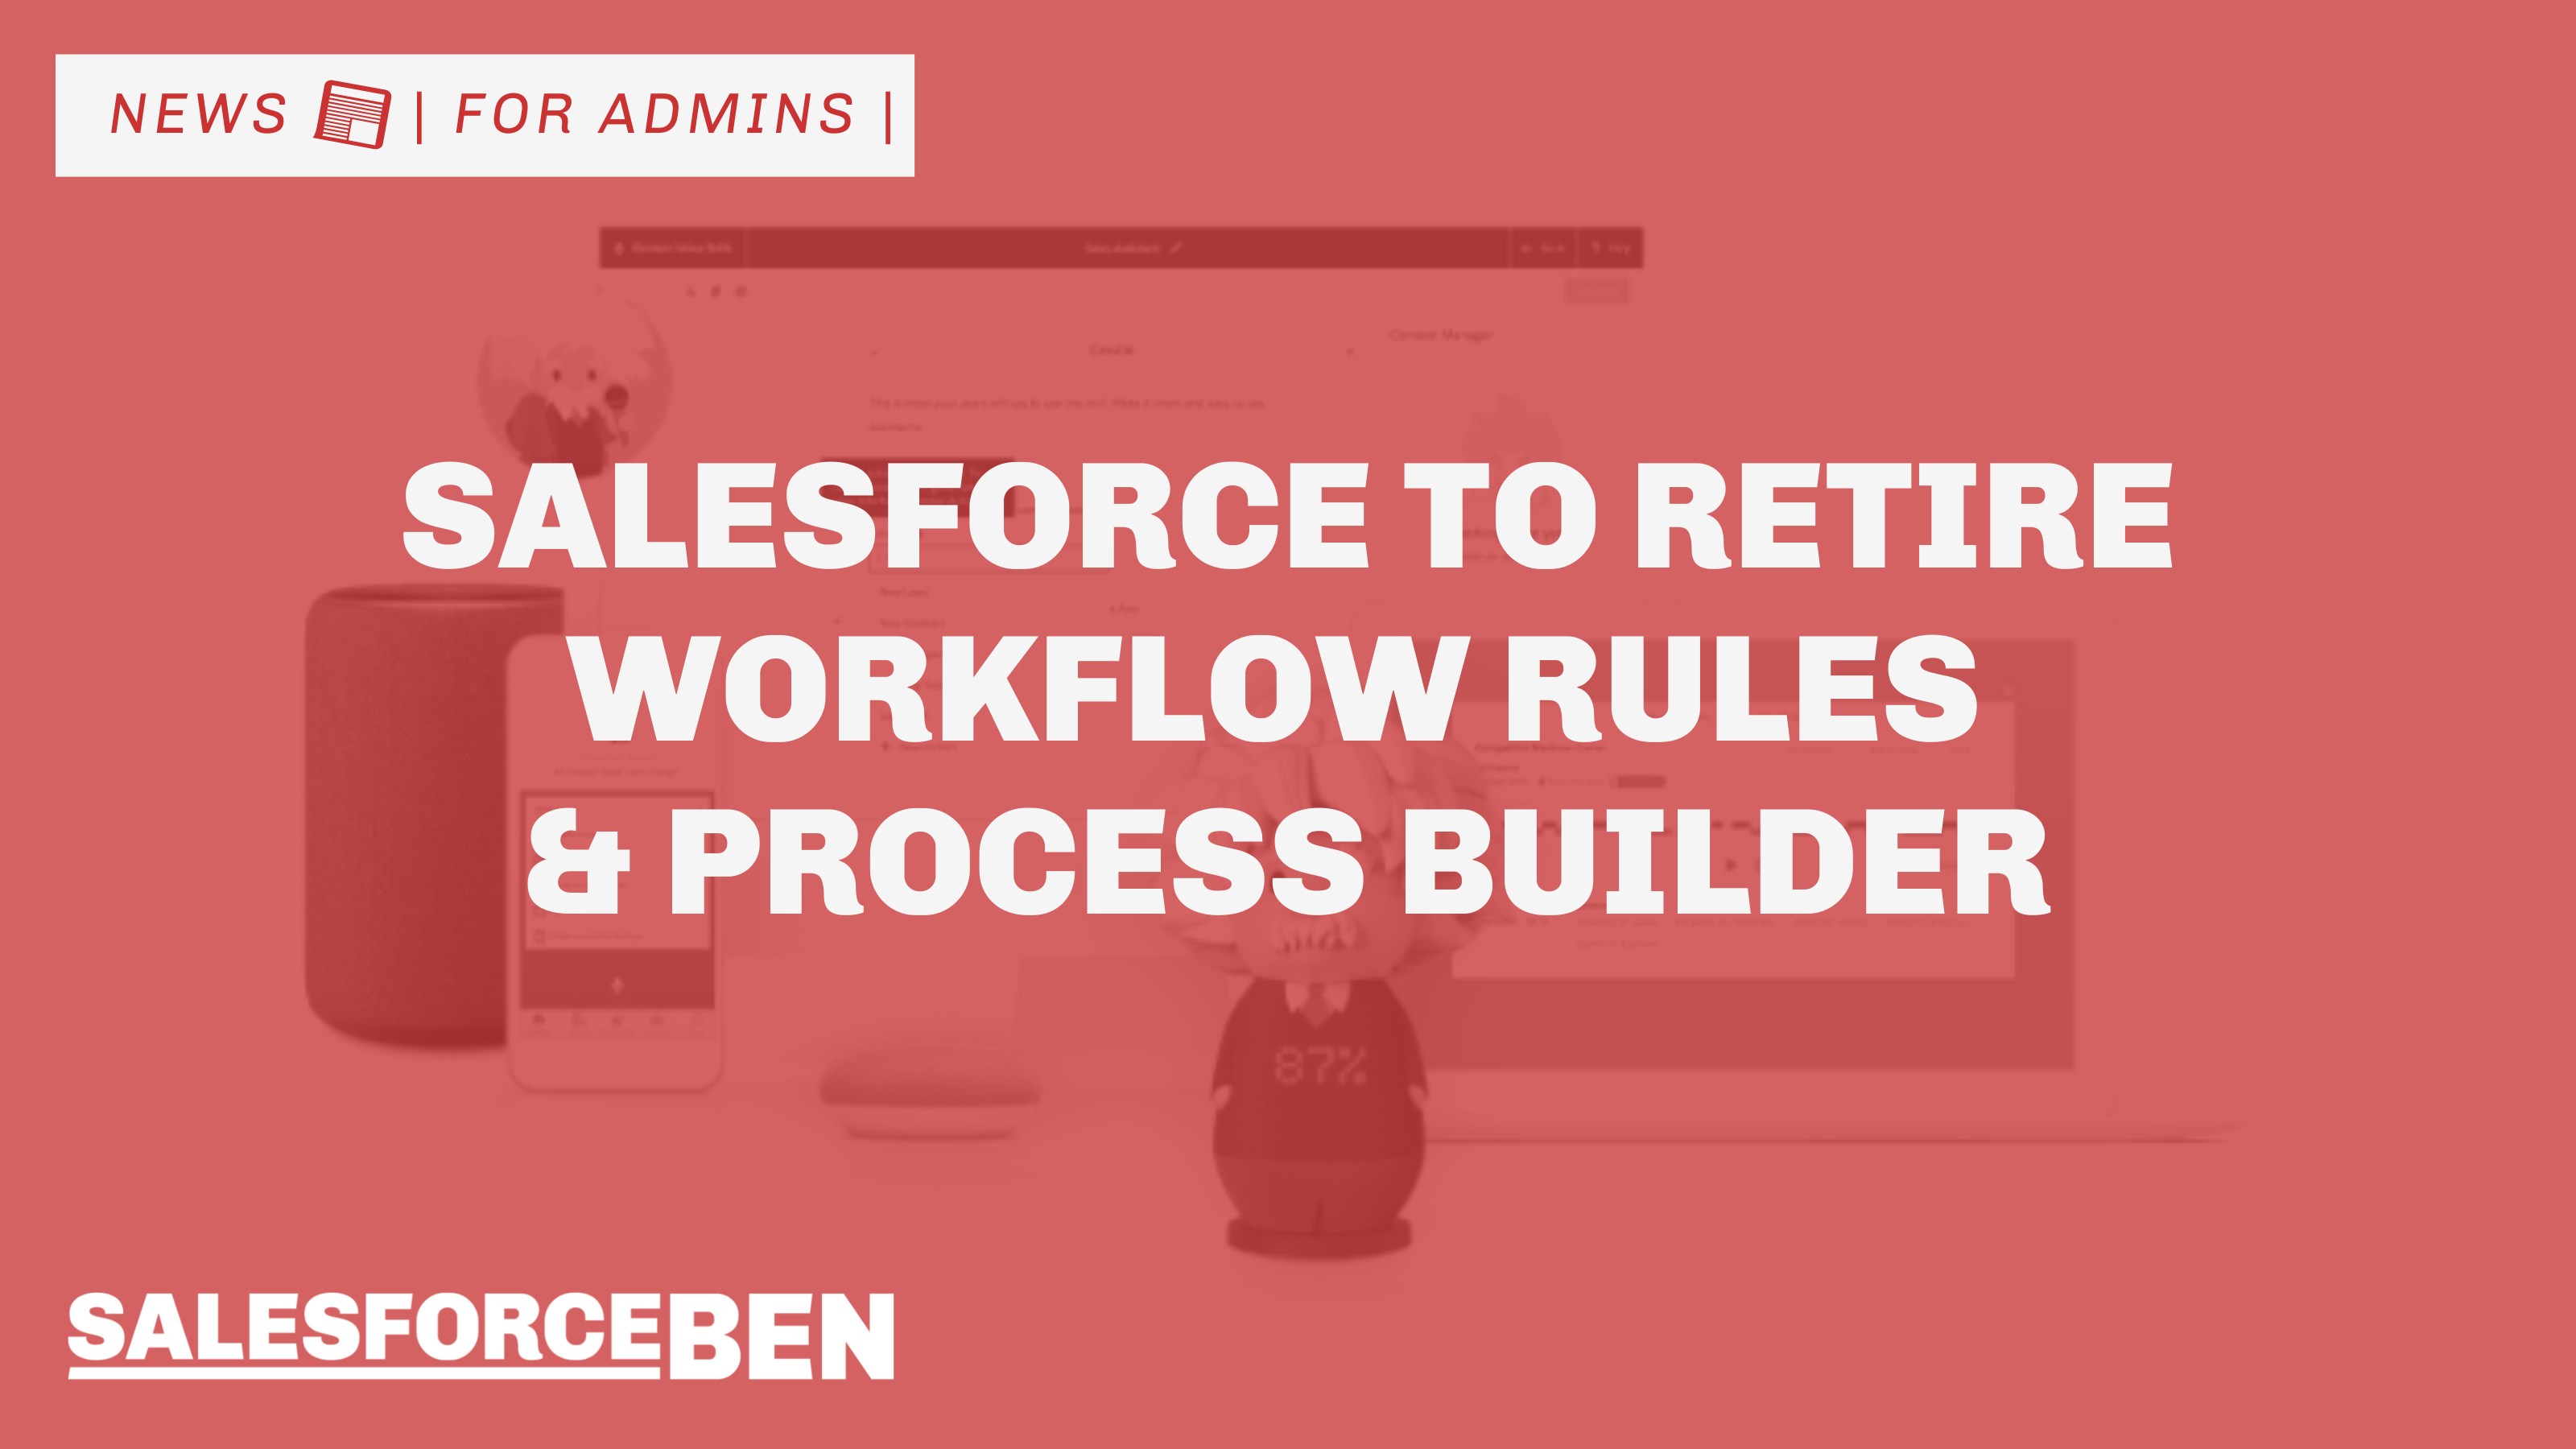 Salesforce to Retire Workflow Rules and Process Builder